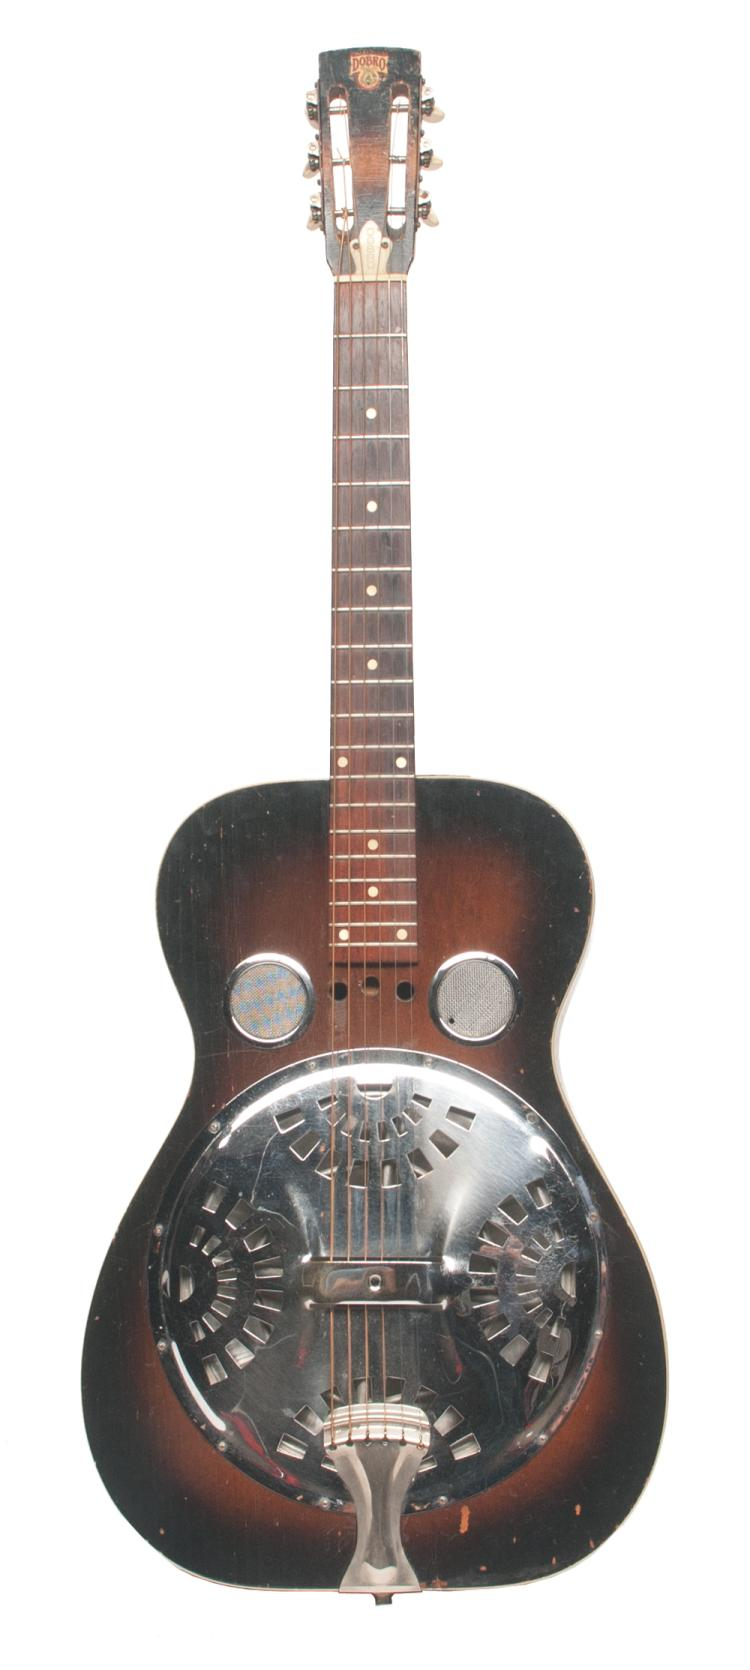 Dobro (Dobro Brand) serial number D 311 4, Live Performance/Touring owned and played by Tom T. Hall, made in 1974